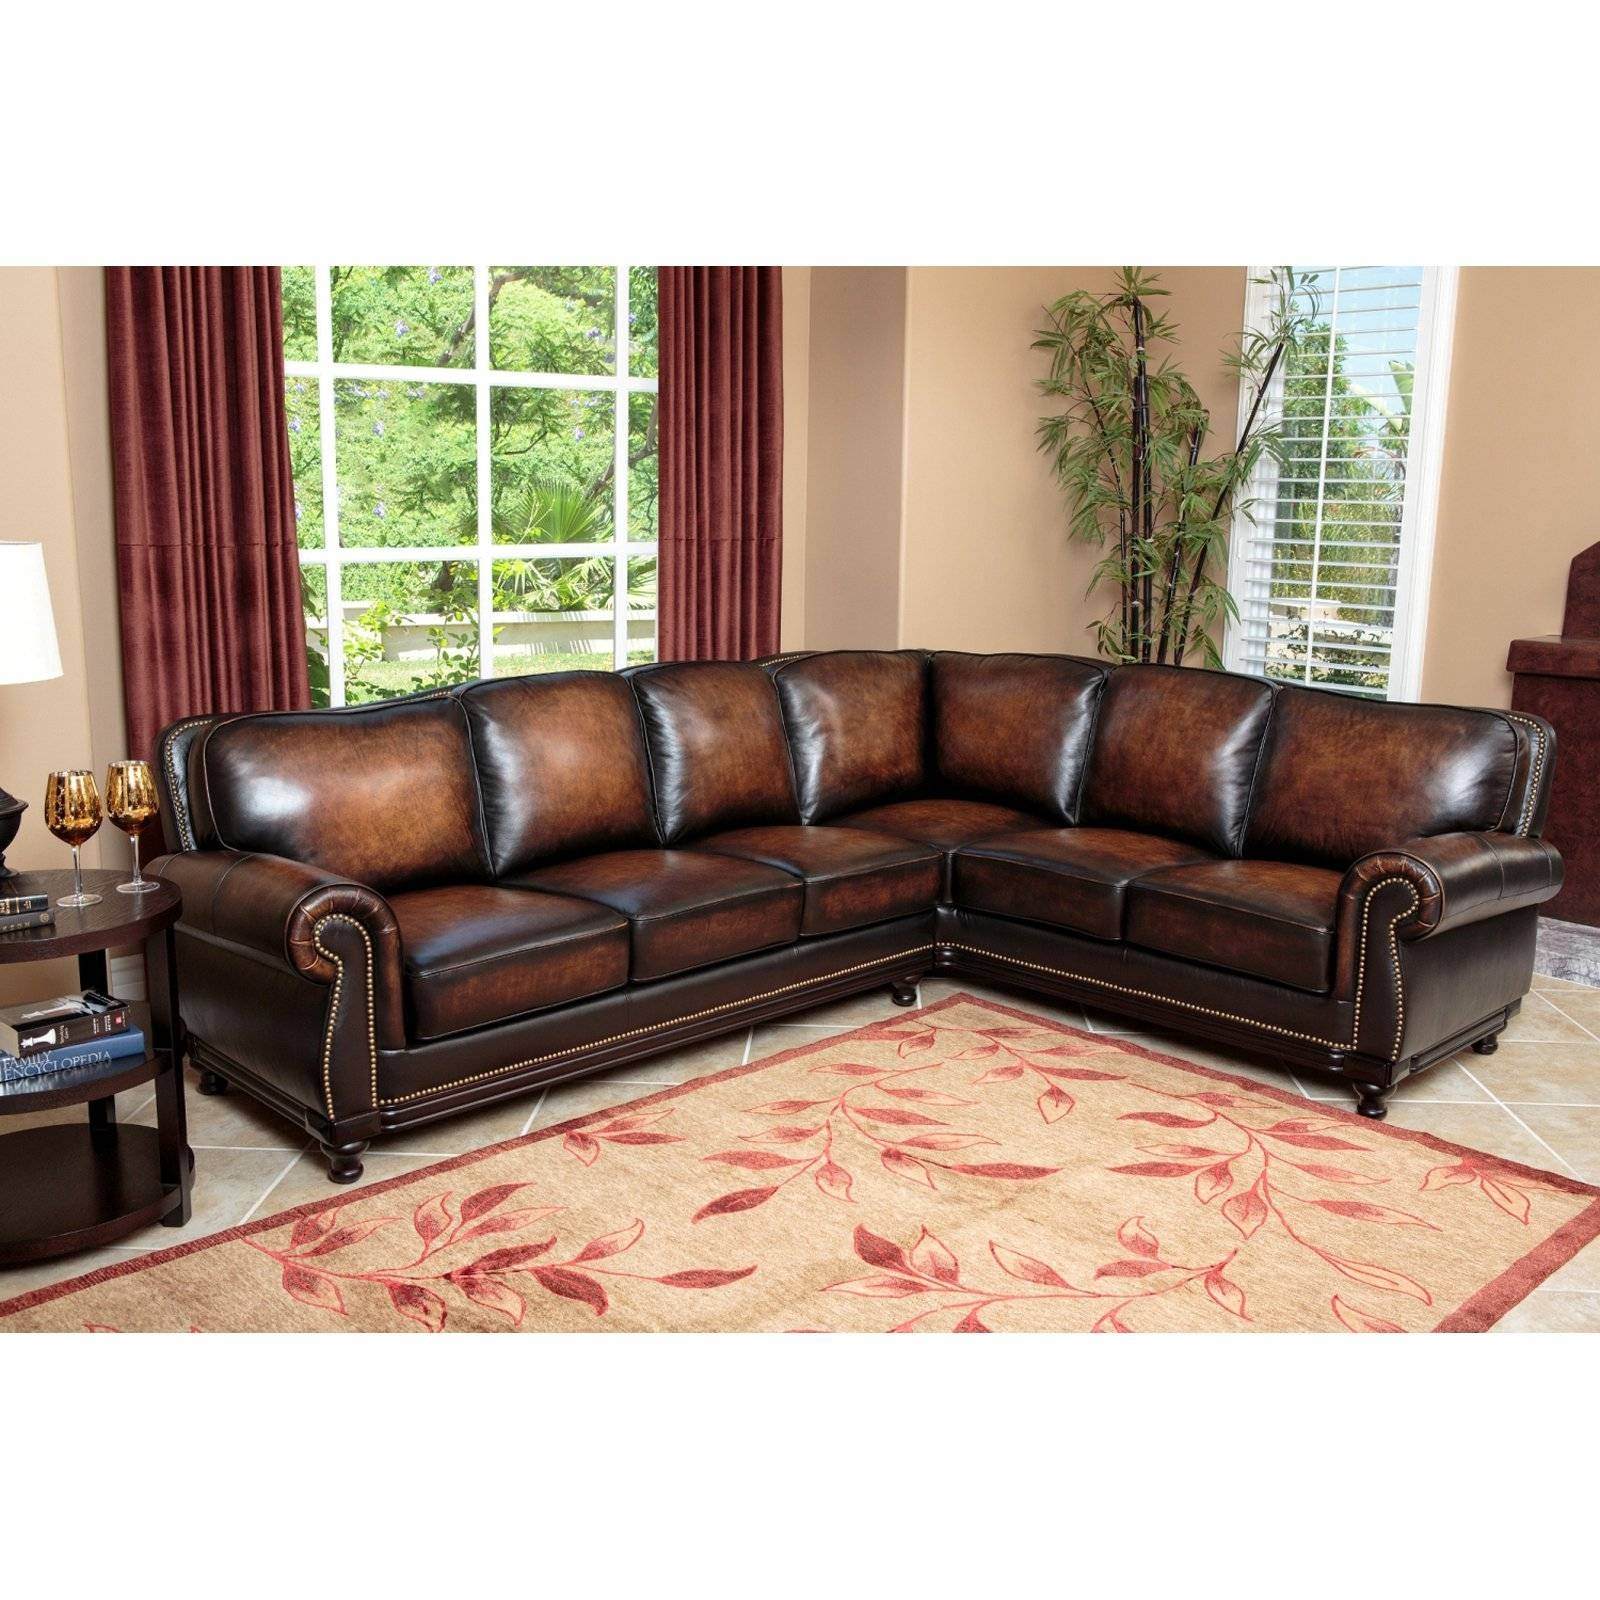 Abbyson Nizza Hand Rubbed Leather Sectional Sofa - Brown | Hayneedle for Abbyson Sofas (Image 6 of 15)